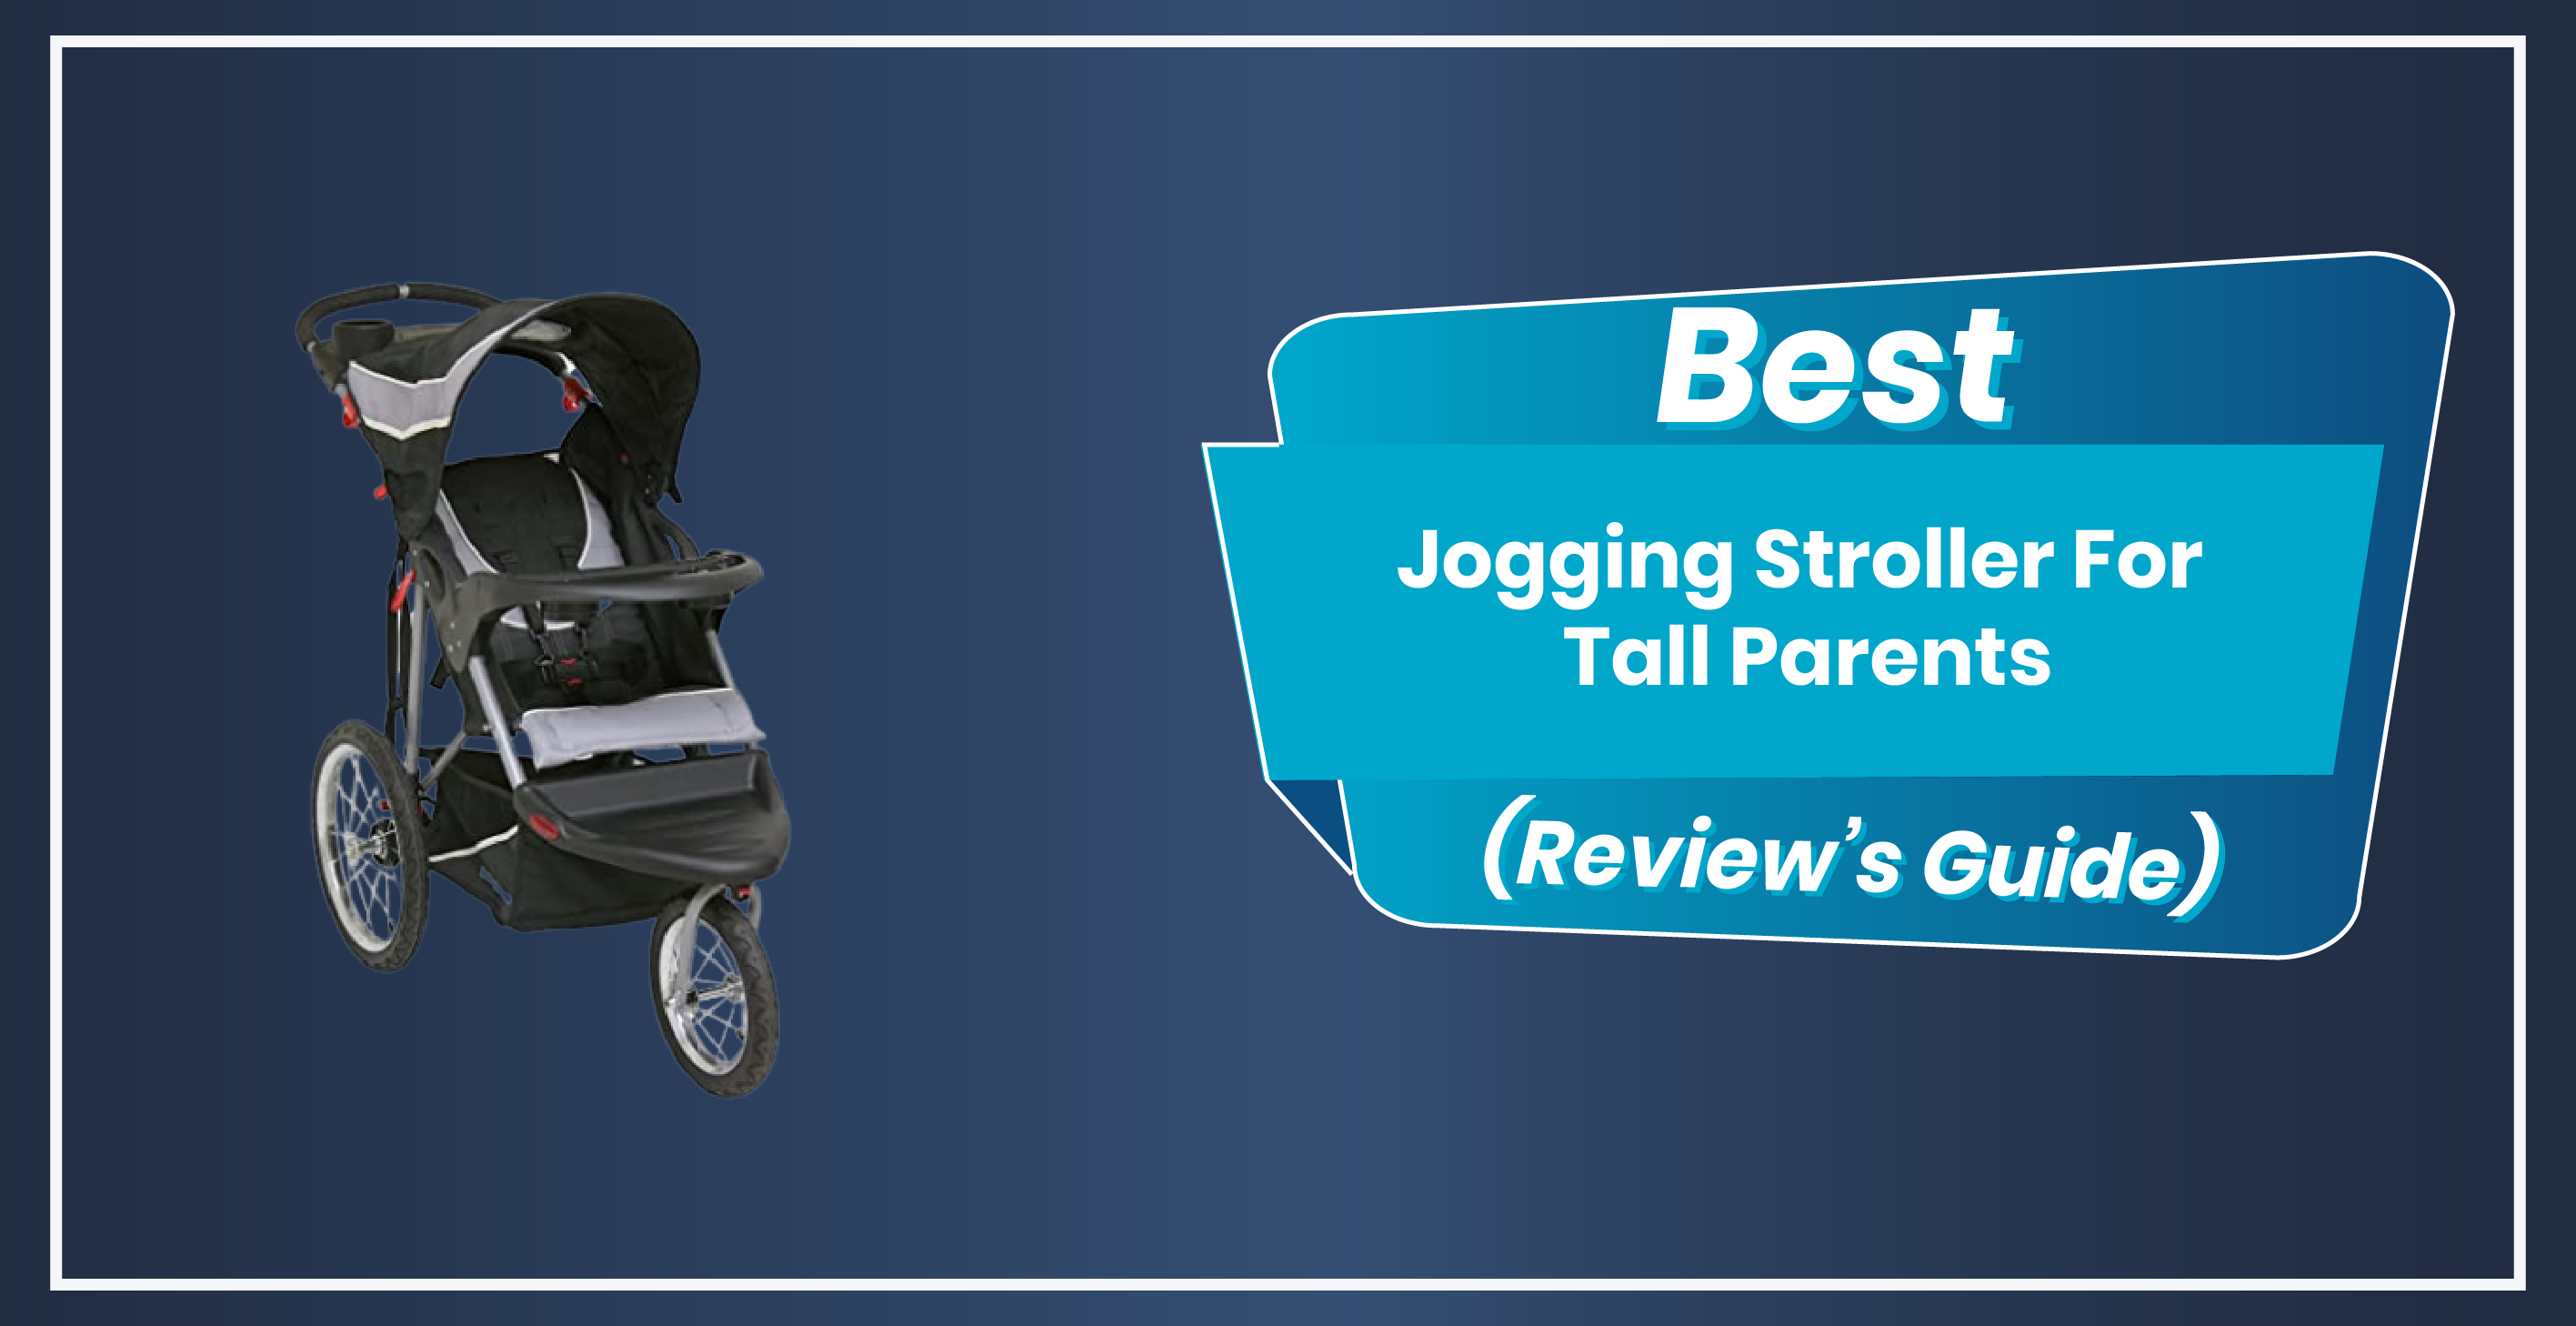 Best Jogging Stroller for Tall Parents